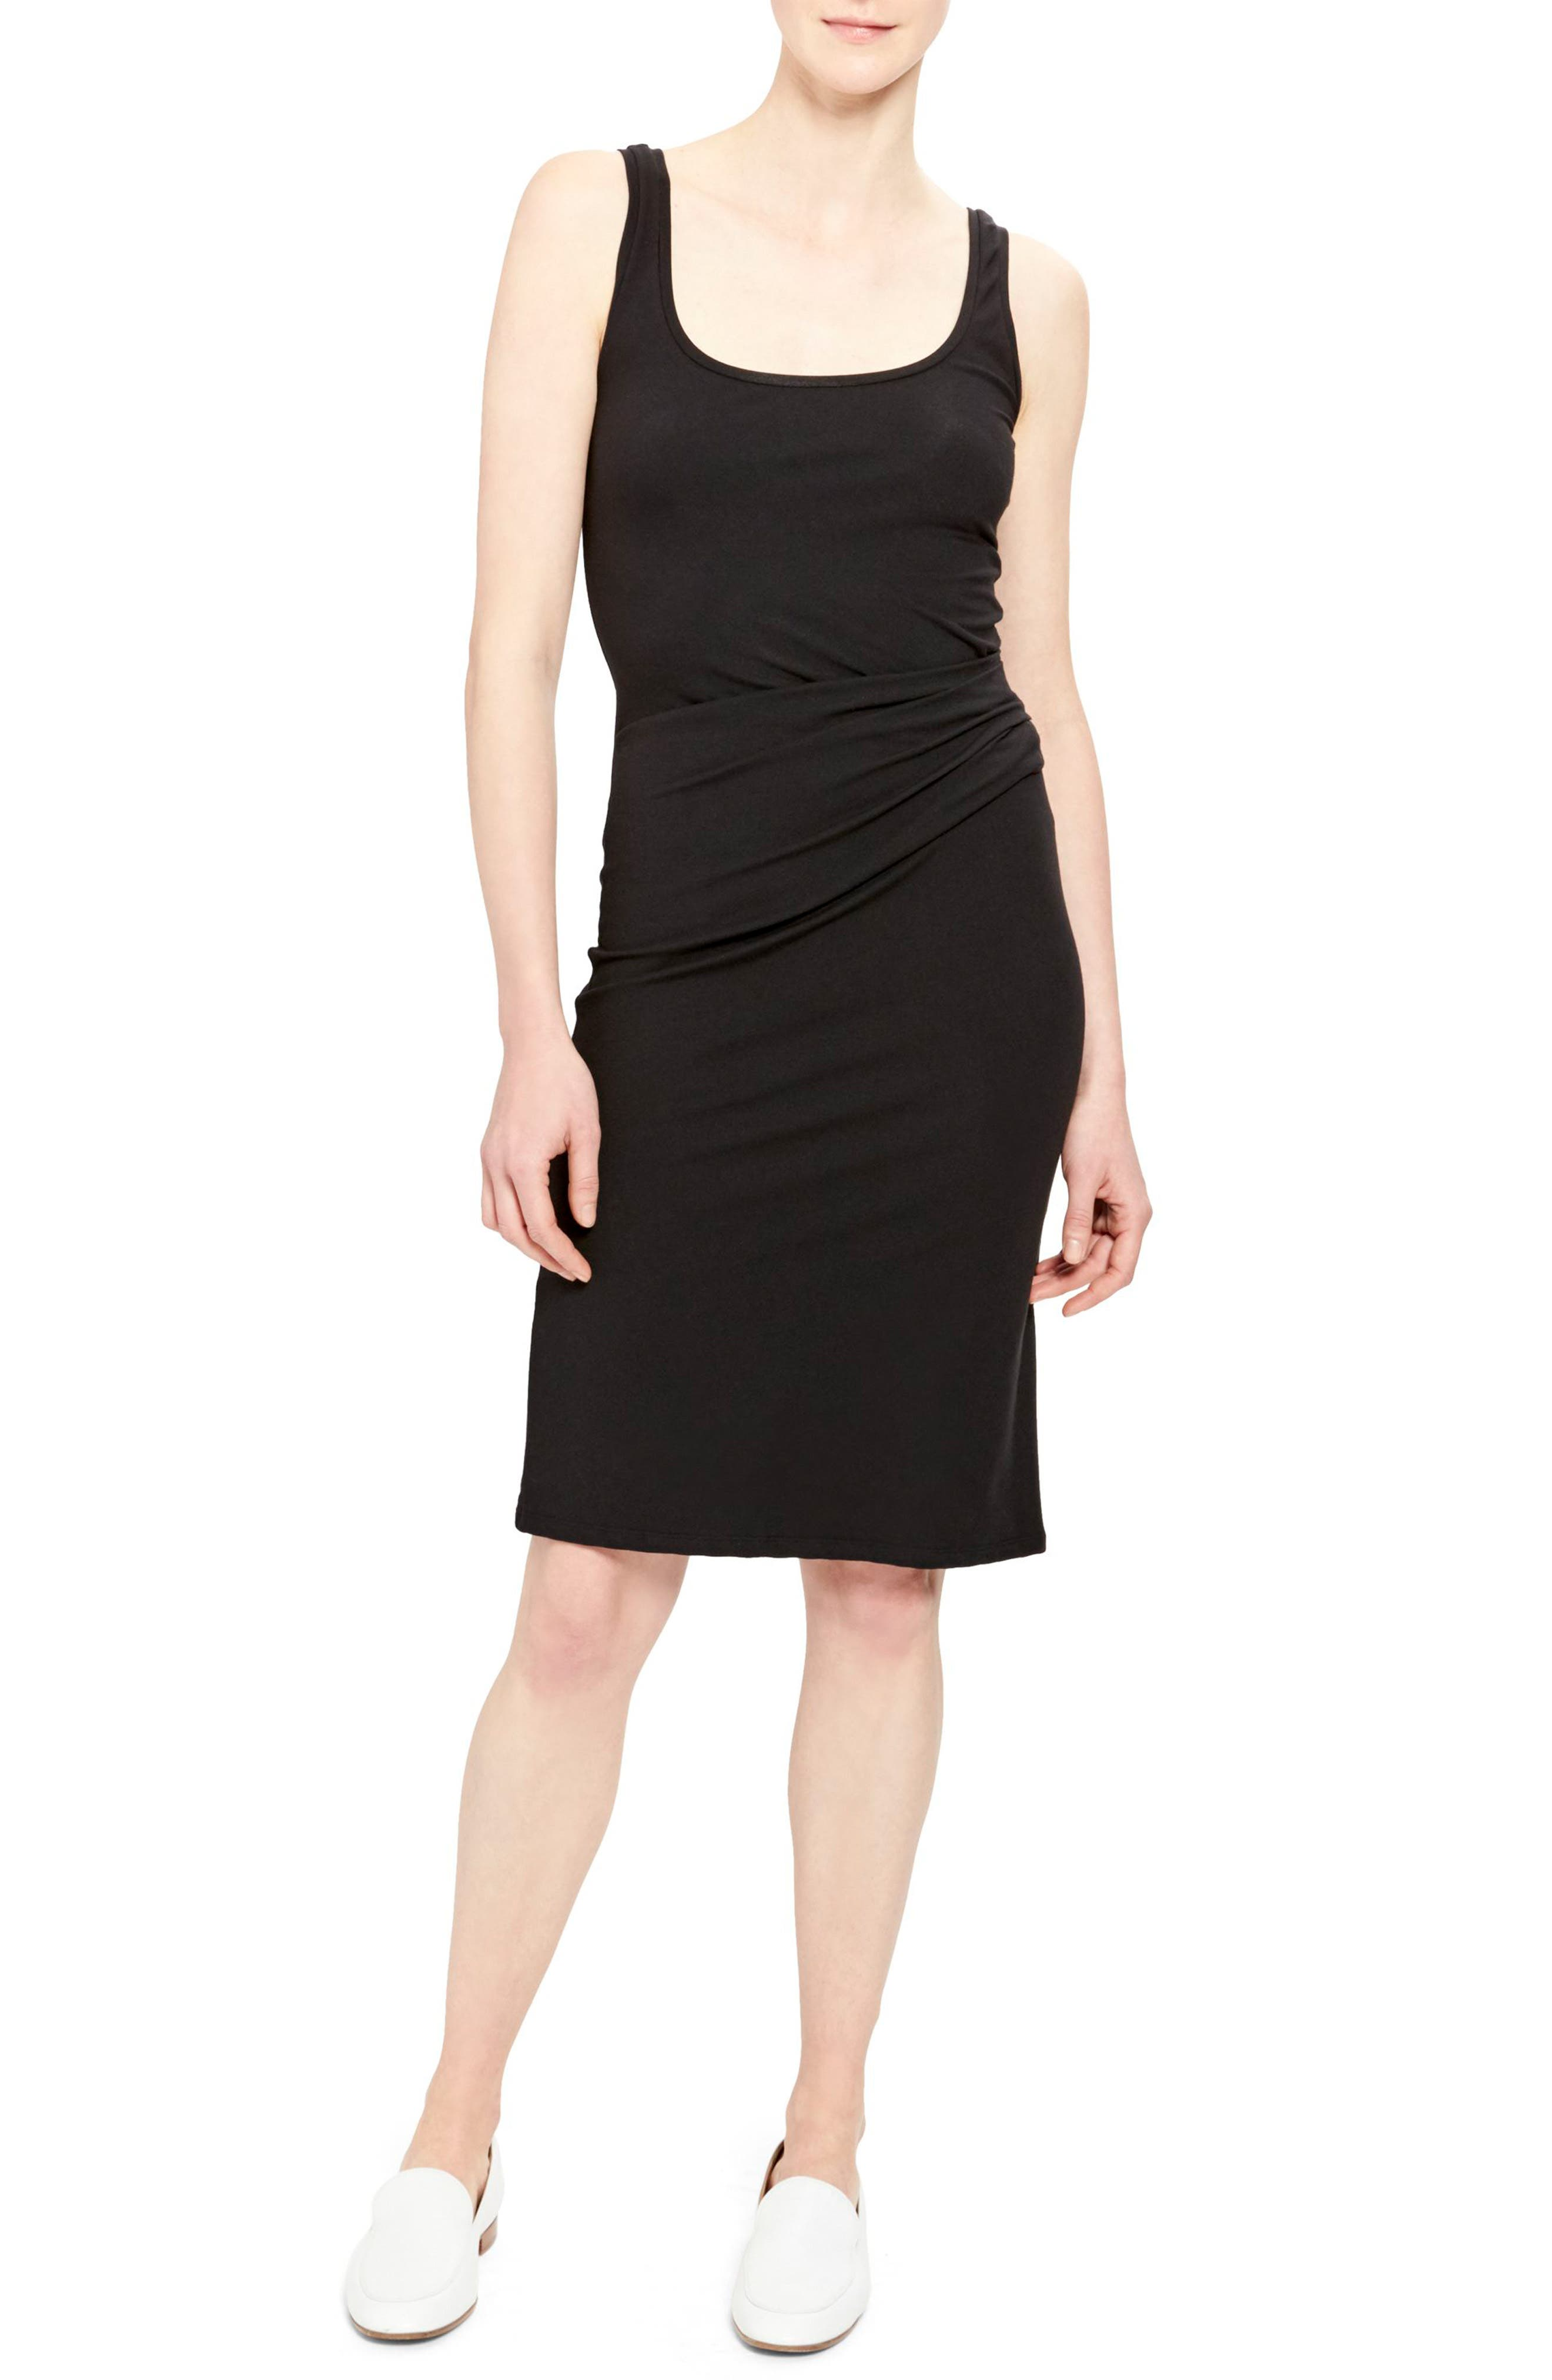 Theory Rubric Ruched Stretch Jersey Tank Dress, Size Petite - Black